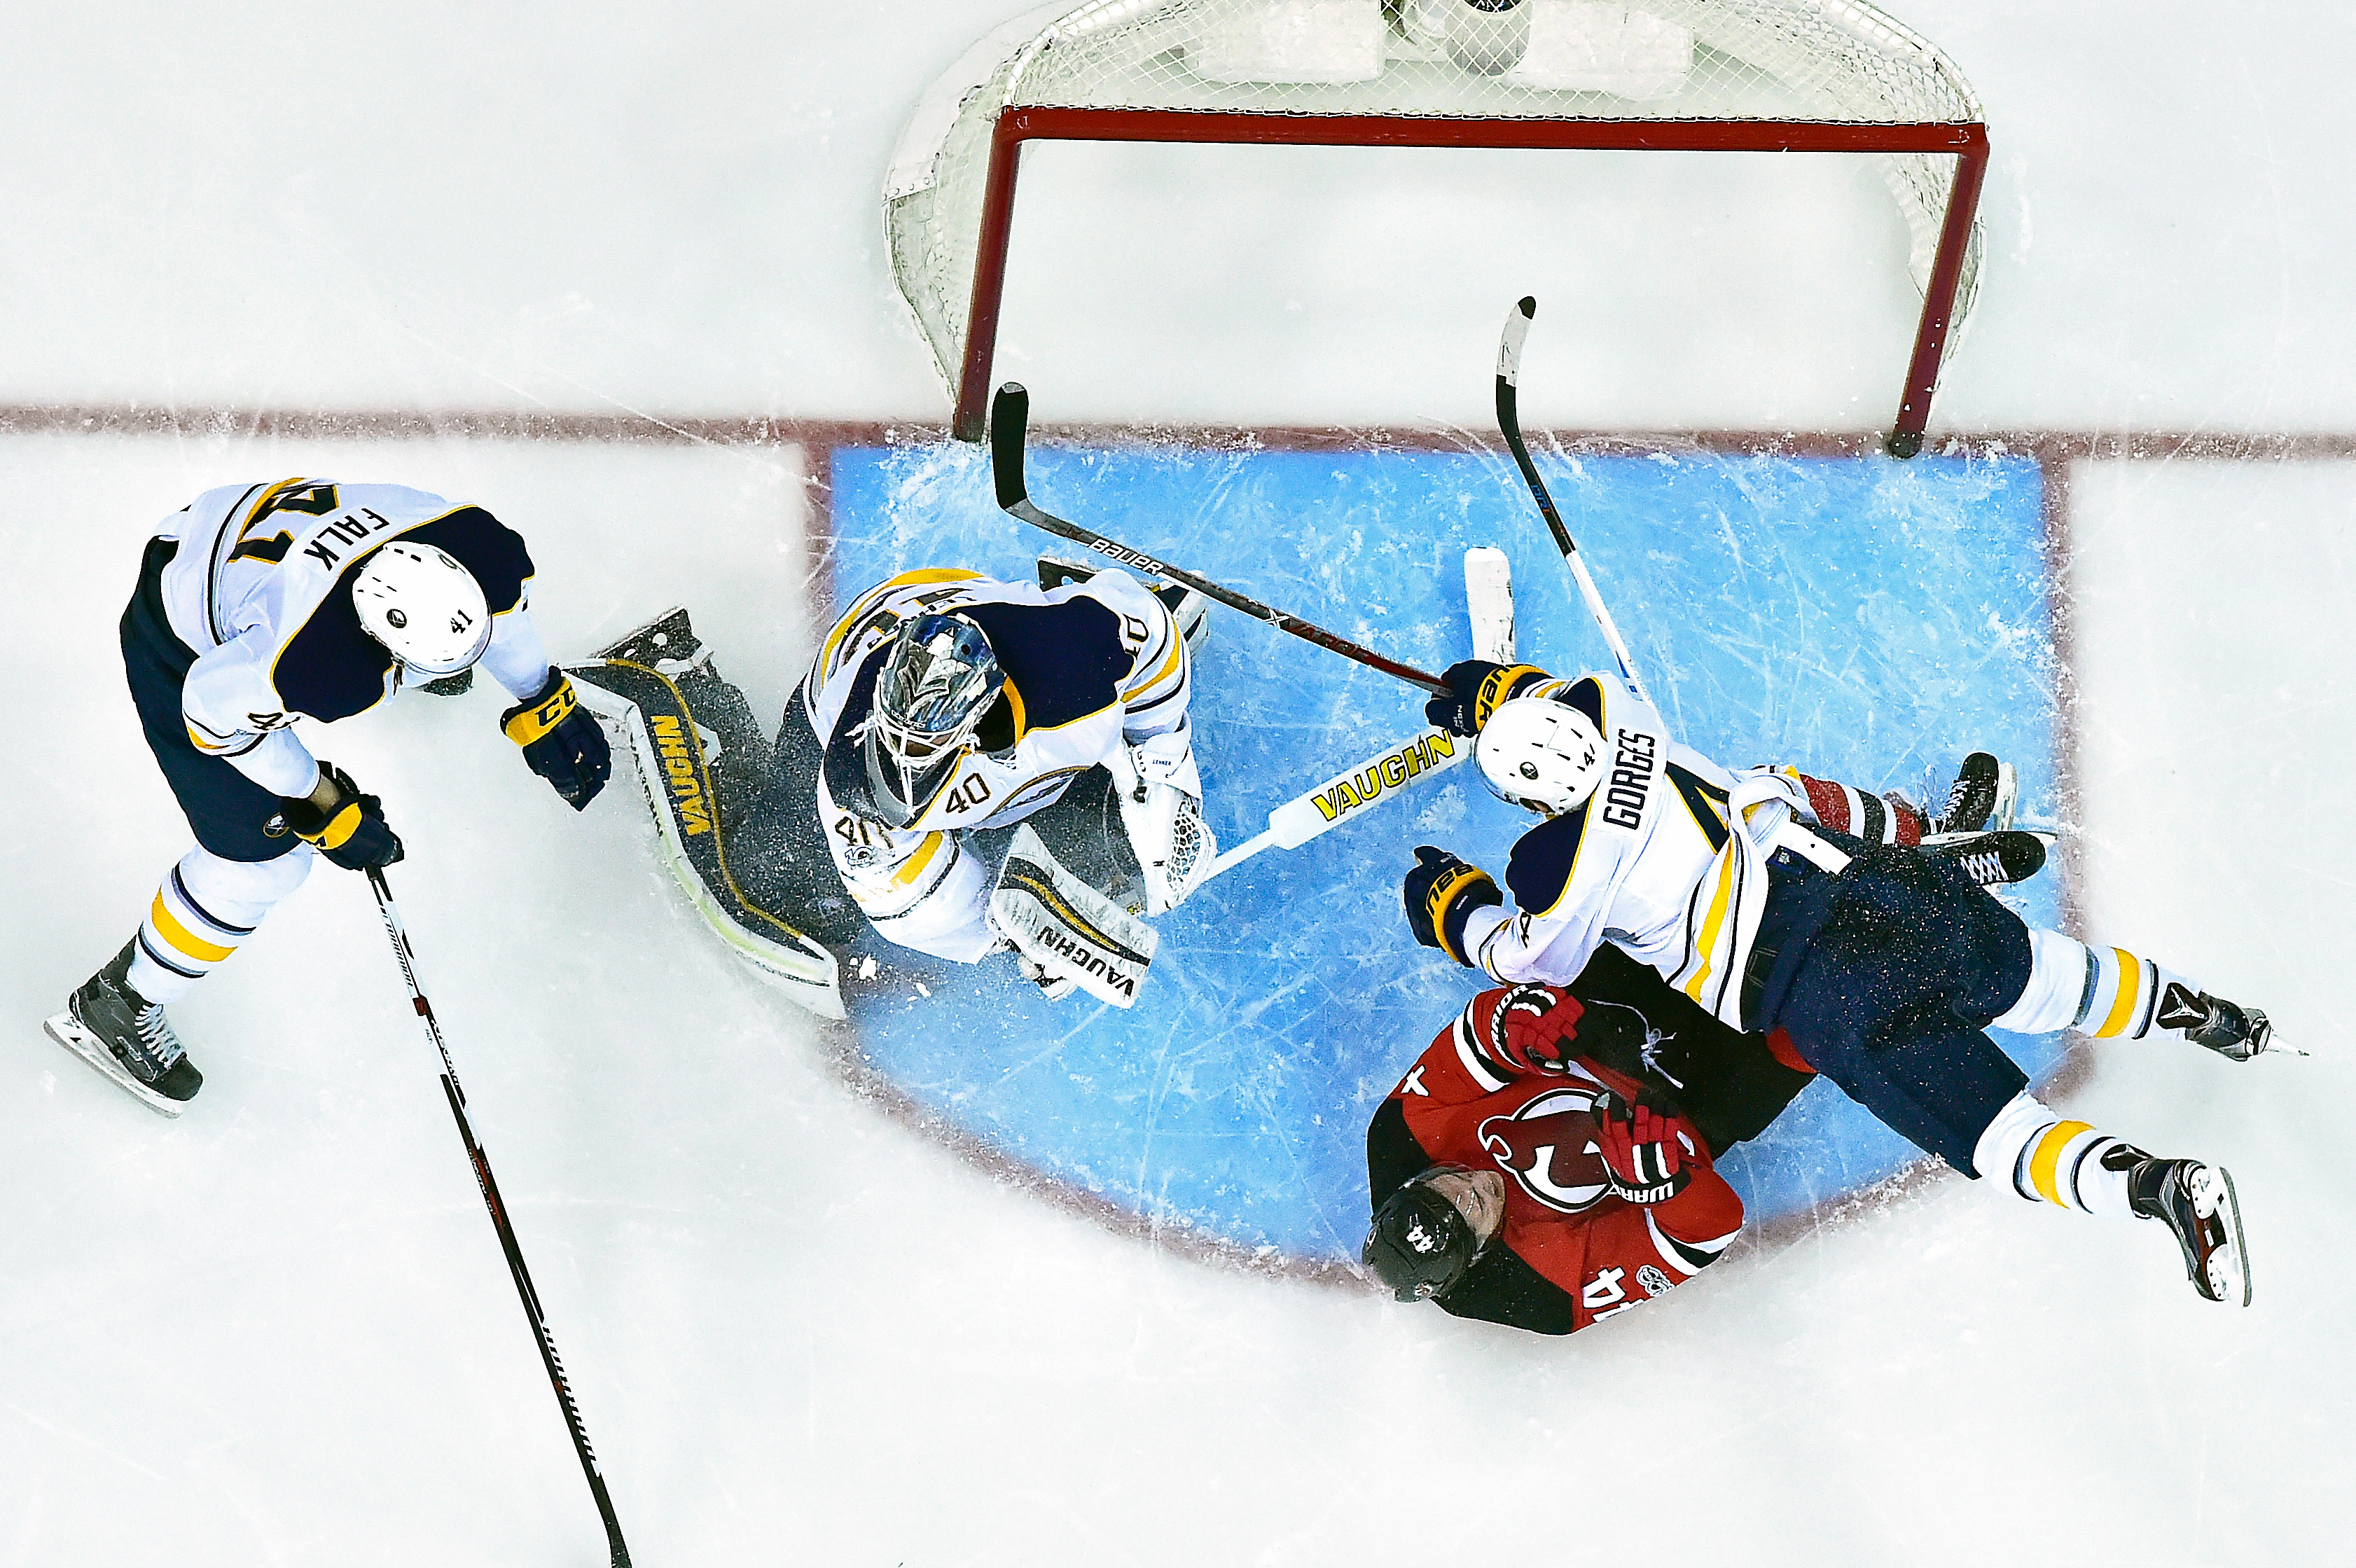 When the Sabres go off script, things look chaotic near the net and elsewhere. (Getty Images)